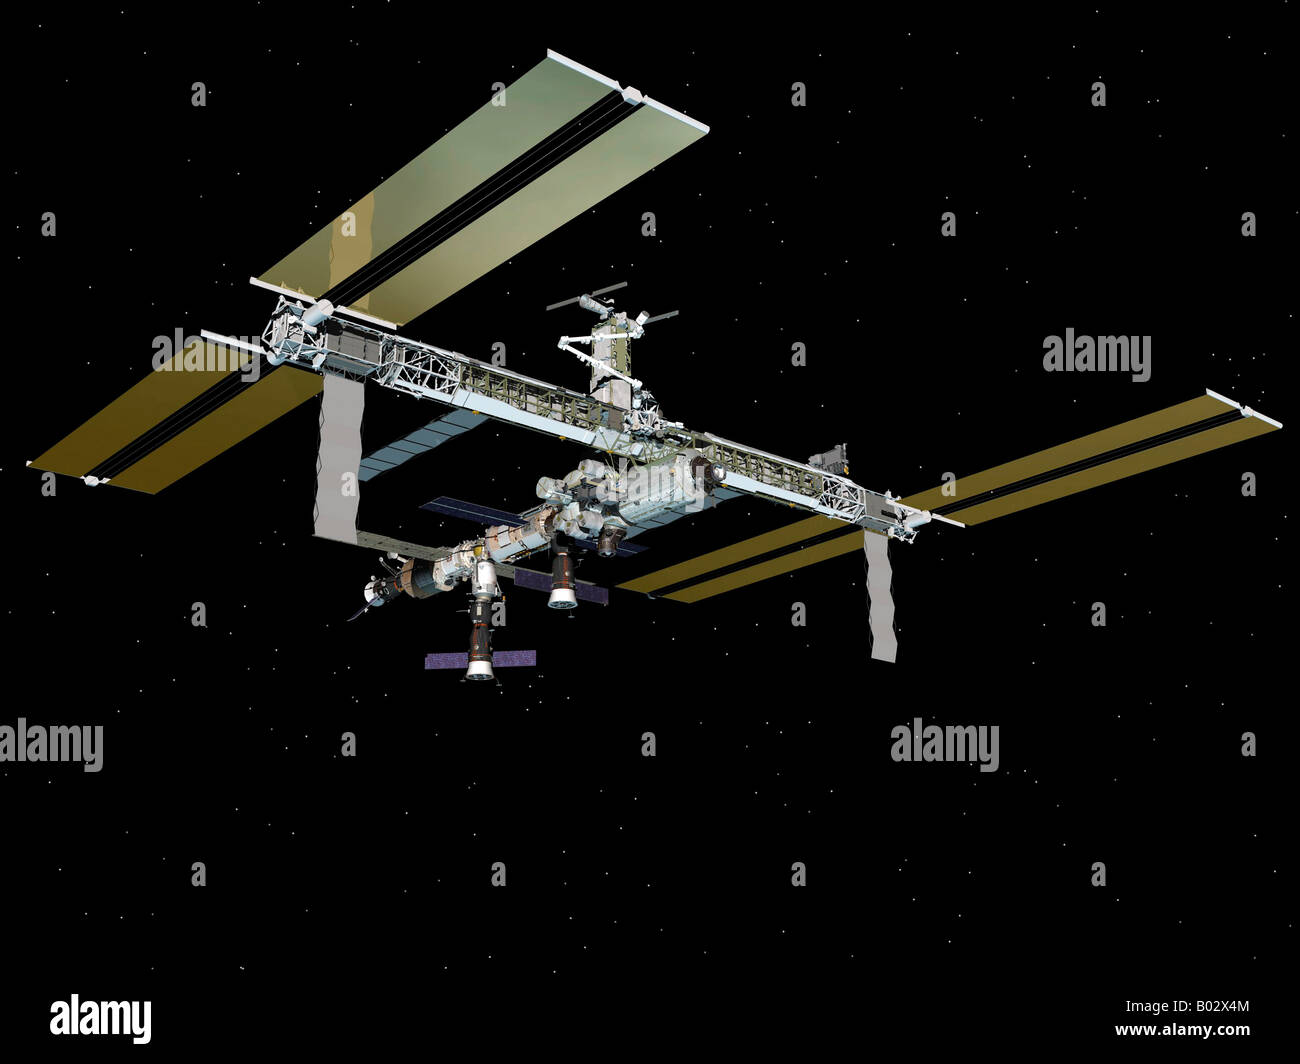 Computer generated image of the International Space Station. - Stock Image